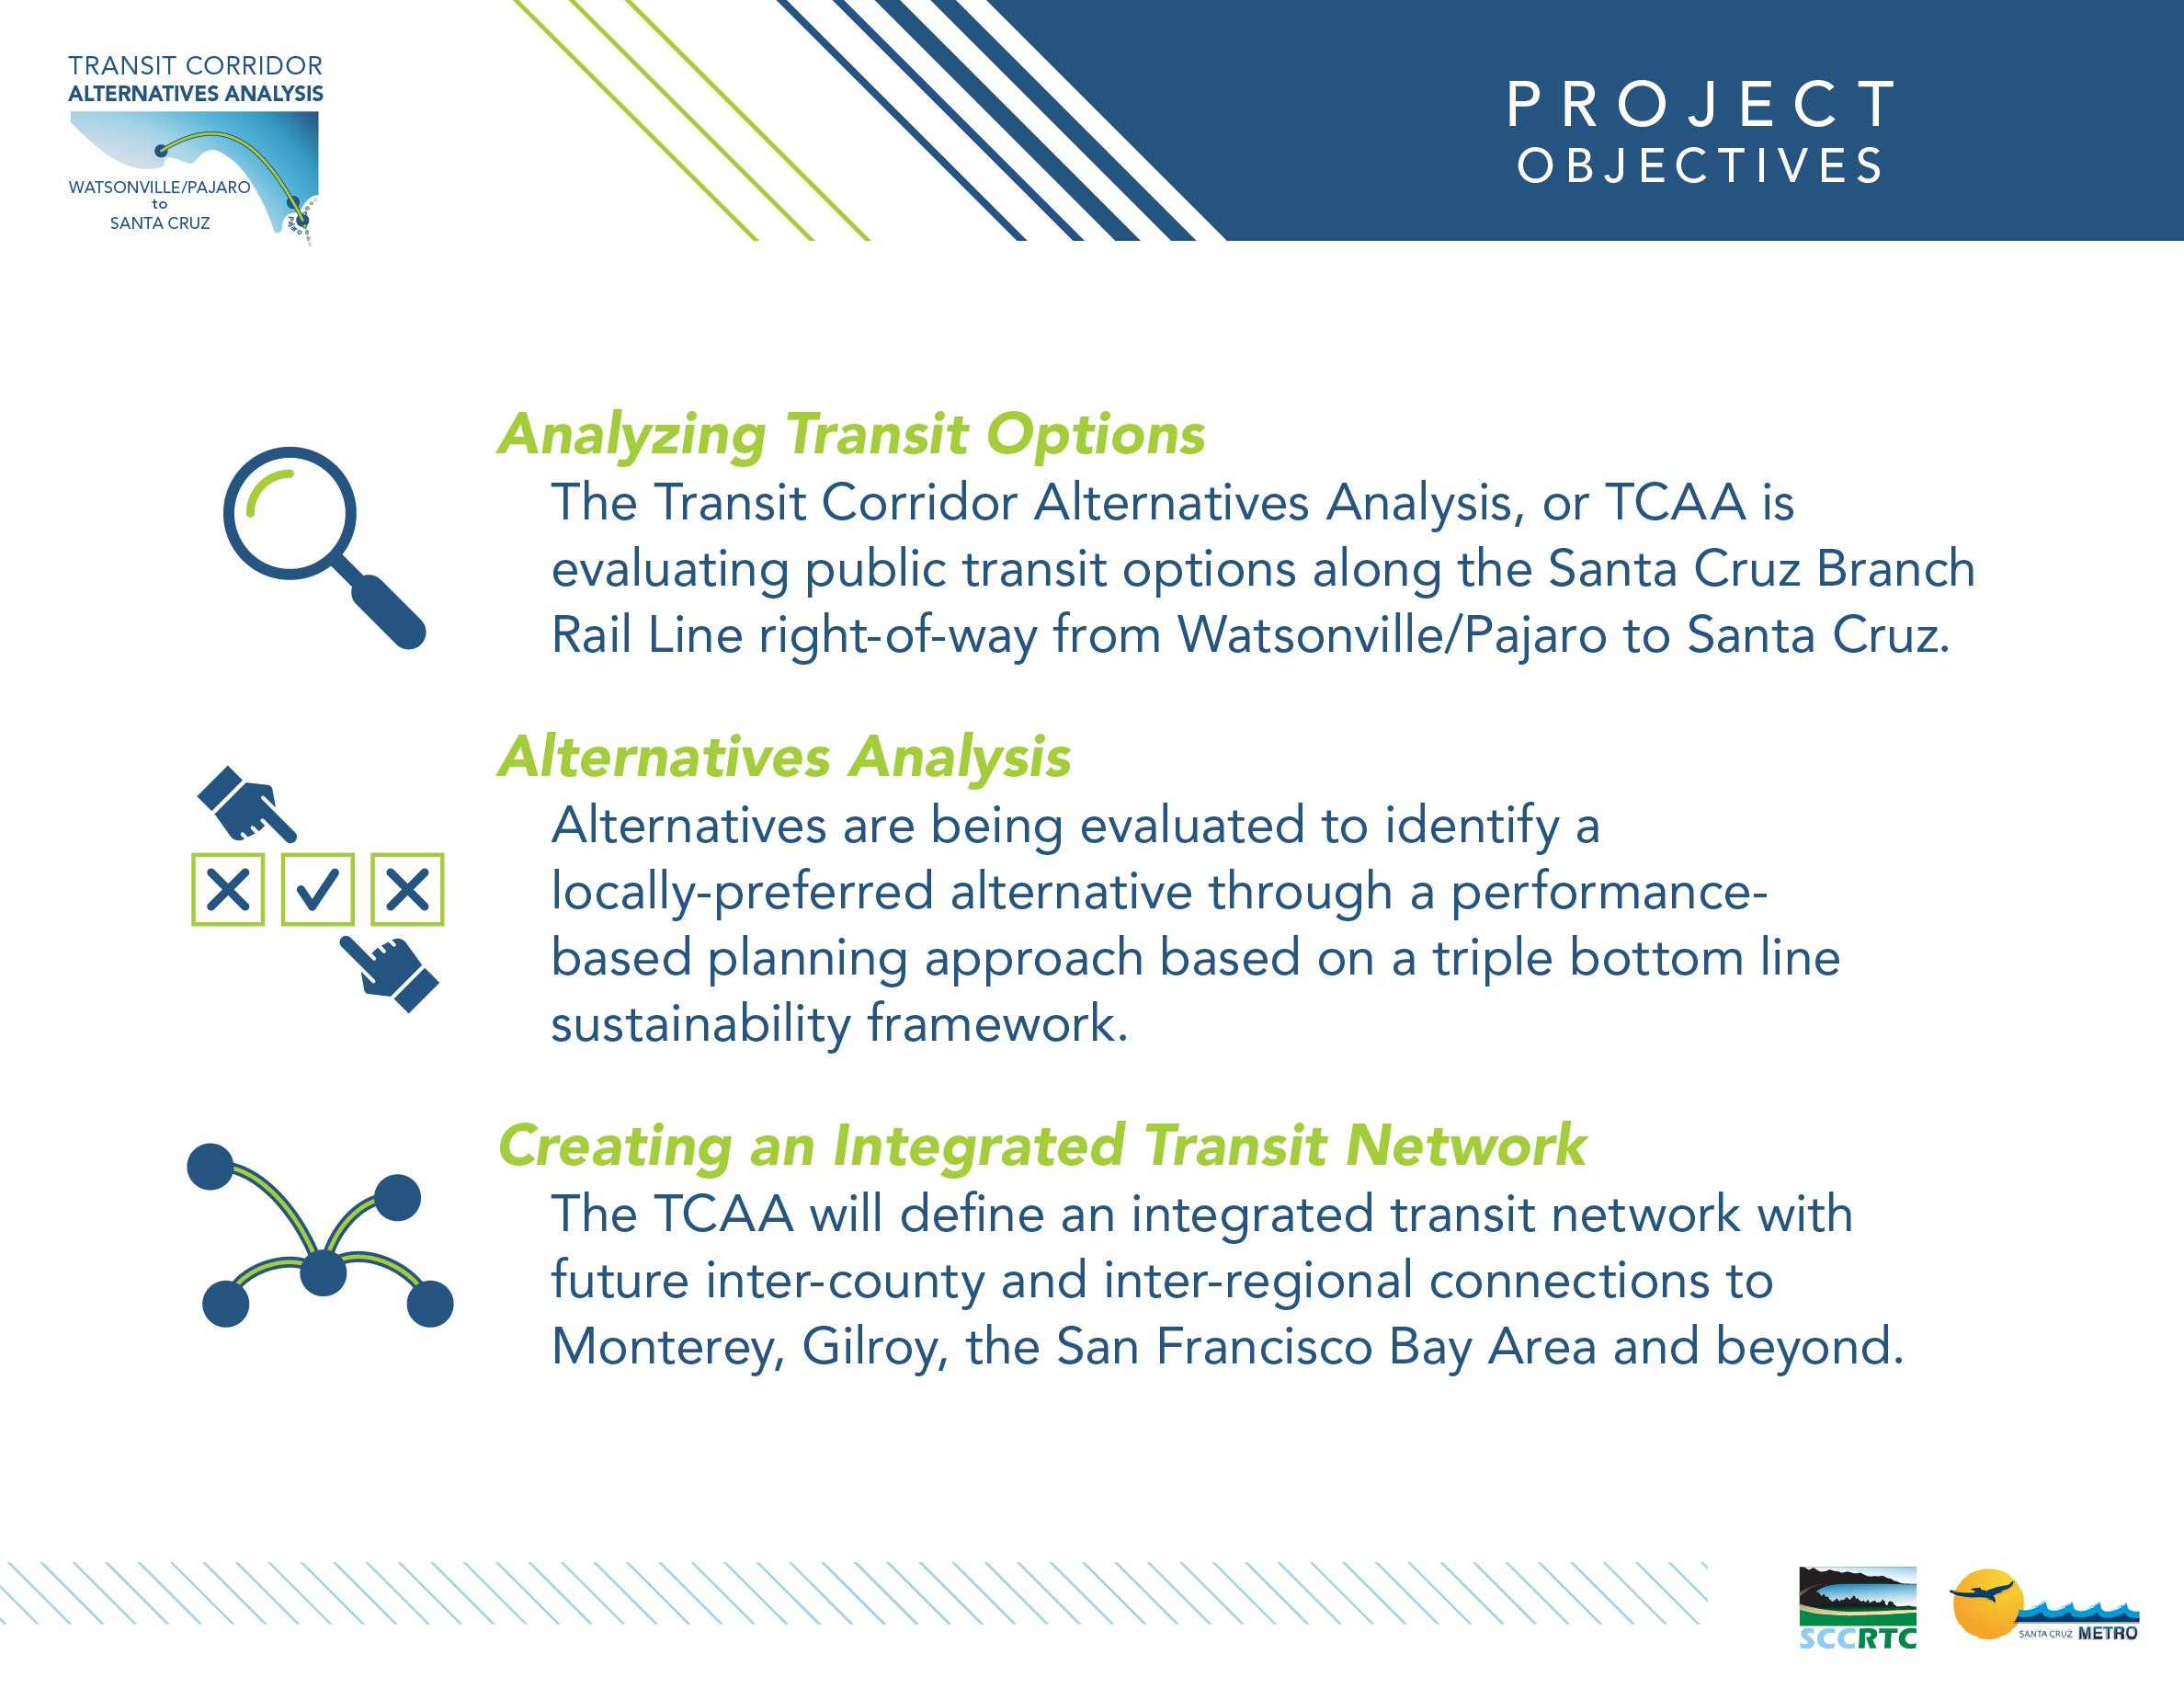 Station 1 – Board 1: Project Objectives Analyzing Transit Options The Transit Corridor Alternatives Analysis, or TCAA is evaluating public transit options along the Santa Cruz Branch Rail Line right-of-way from Watsonville/Pajaro to Santa Cruz. Alternatives Analysis Alternatives are being evaluated to identify a locally-preferred alternative through a performance-based planning approach based on a triple bottom line sustainability framework. Creating an Integrated Transit Network The TCAA will define an integrated transit network with future inter-county and inter-regional connections to Monterey, Gilroy, the San Francisco Bay Area and beyond.